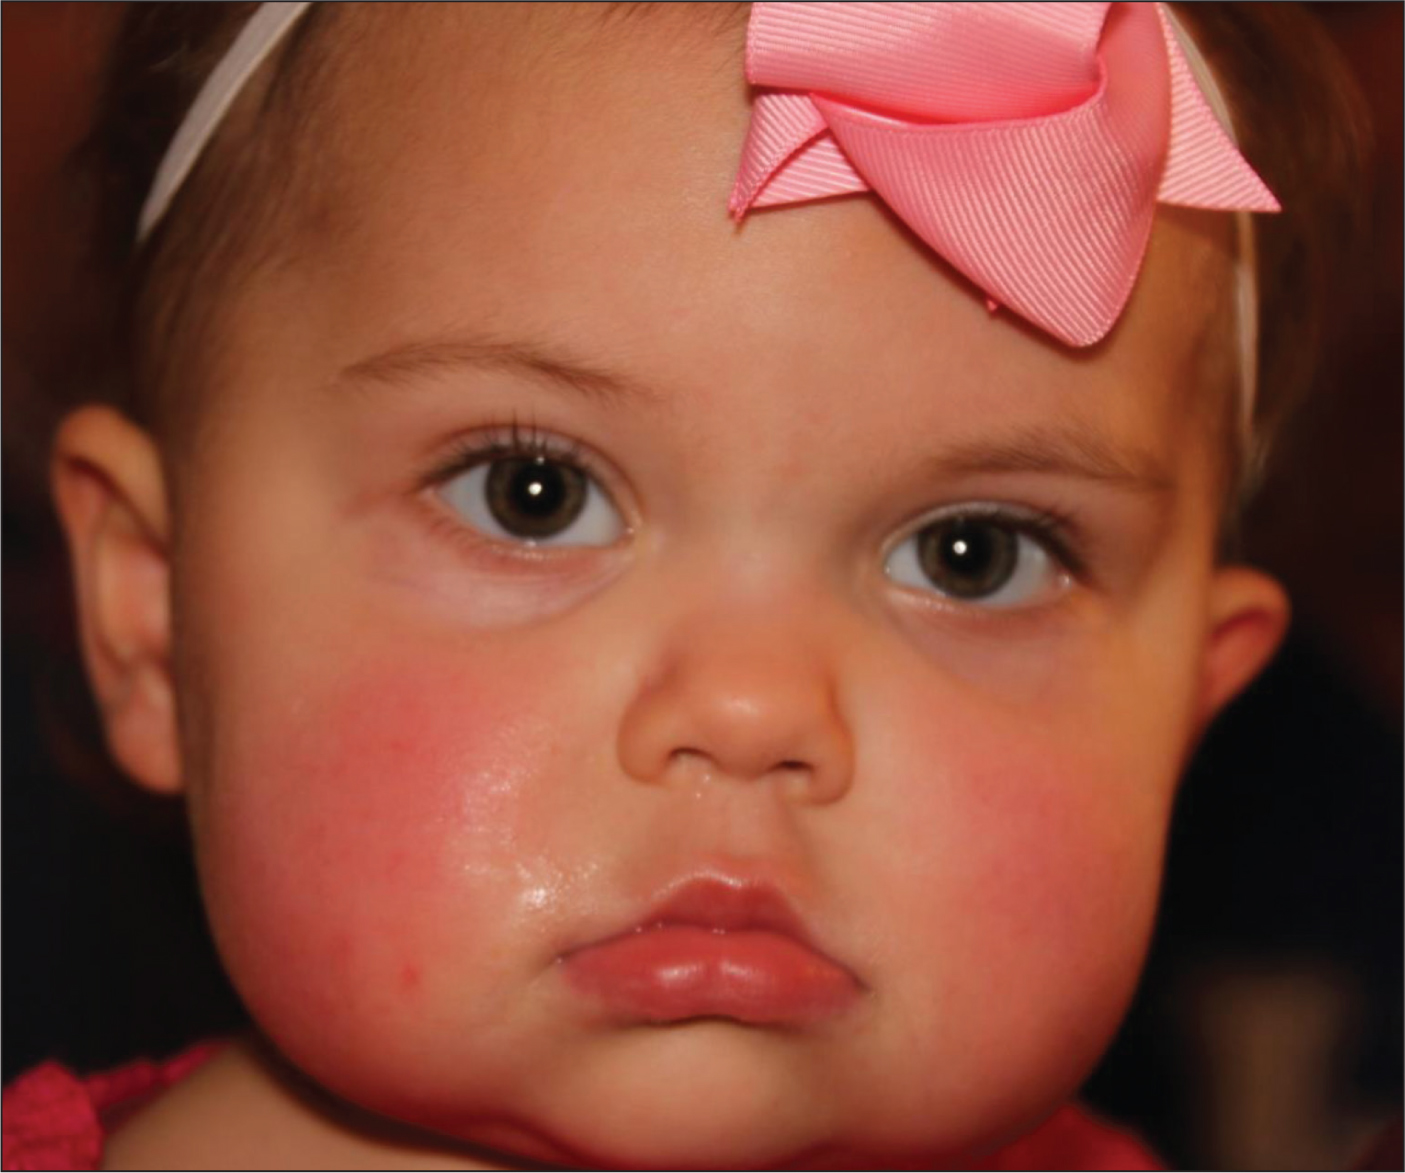 A fully vaccinated 18-month-old child with fever to 103.5°F, anorexia, and crankiness. Does she warrant a complete blood count and blood culture? What if she were not vaccinated?All images courtesy of Stan L. Block, MD, FAAP.